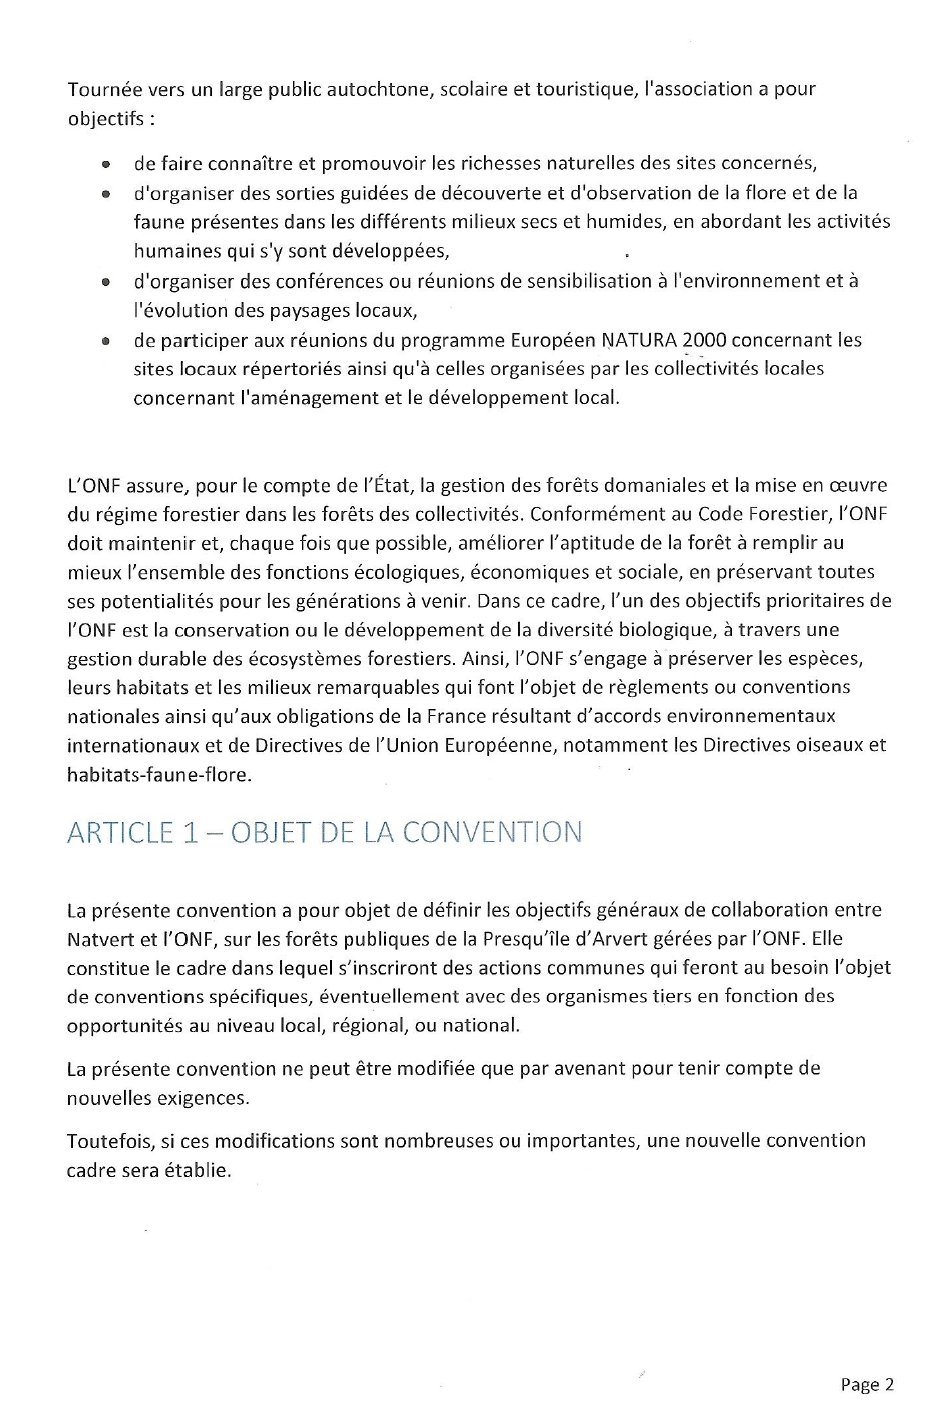 Convention ONF-Natvert Page 2